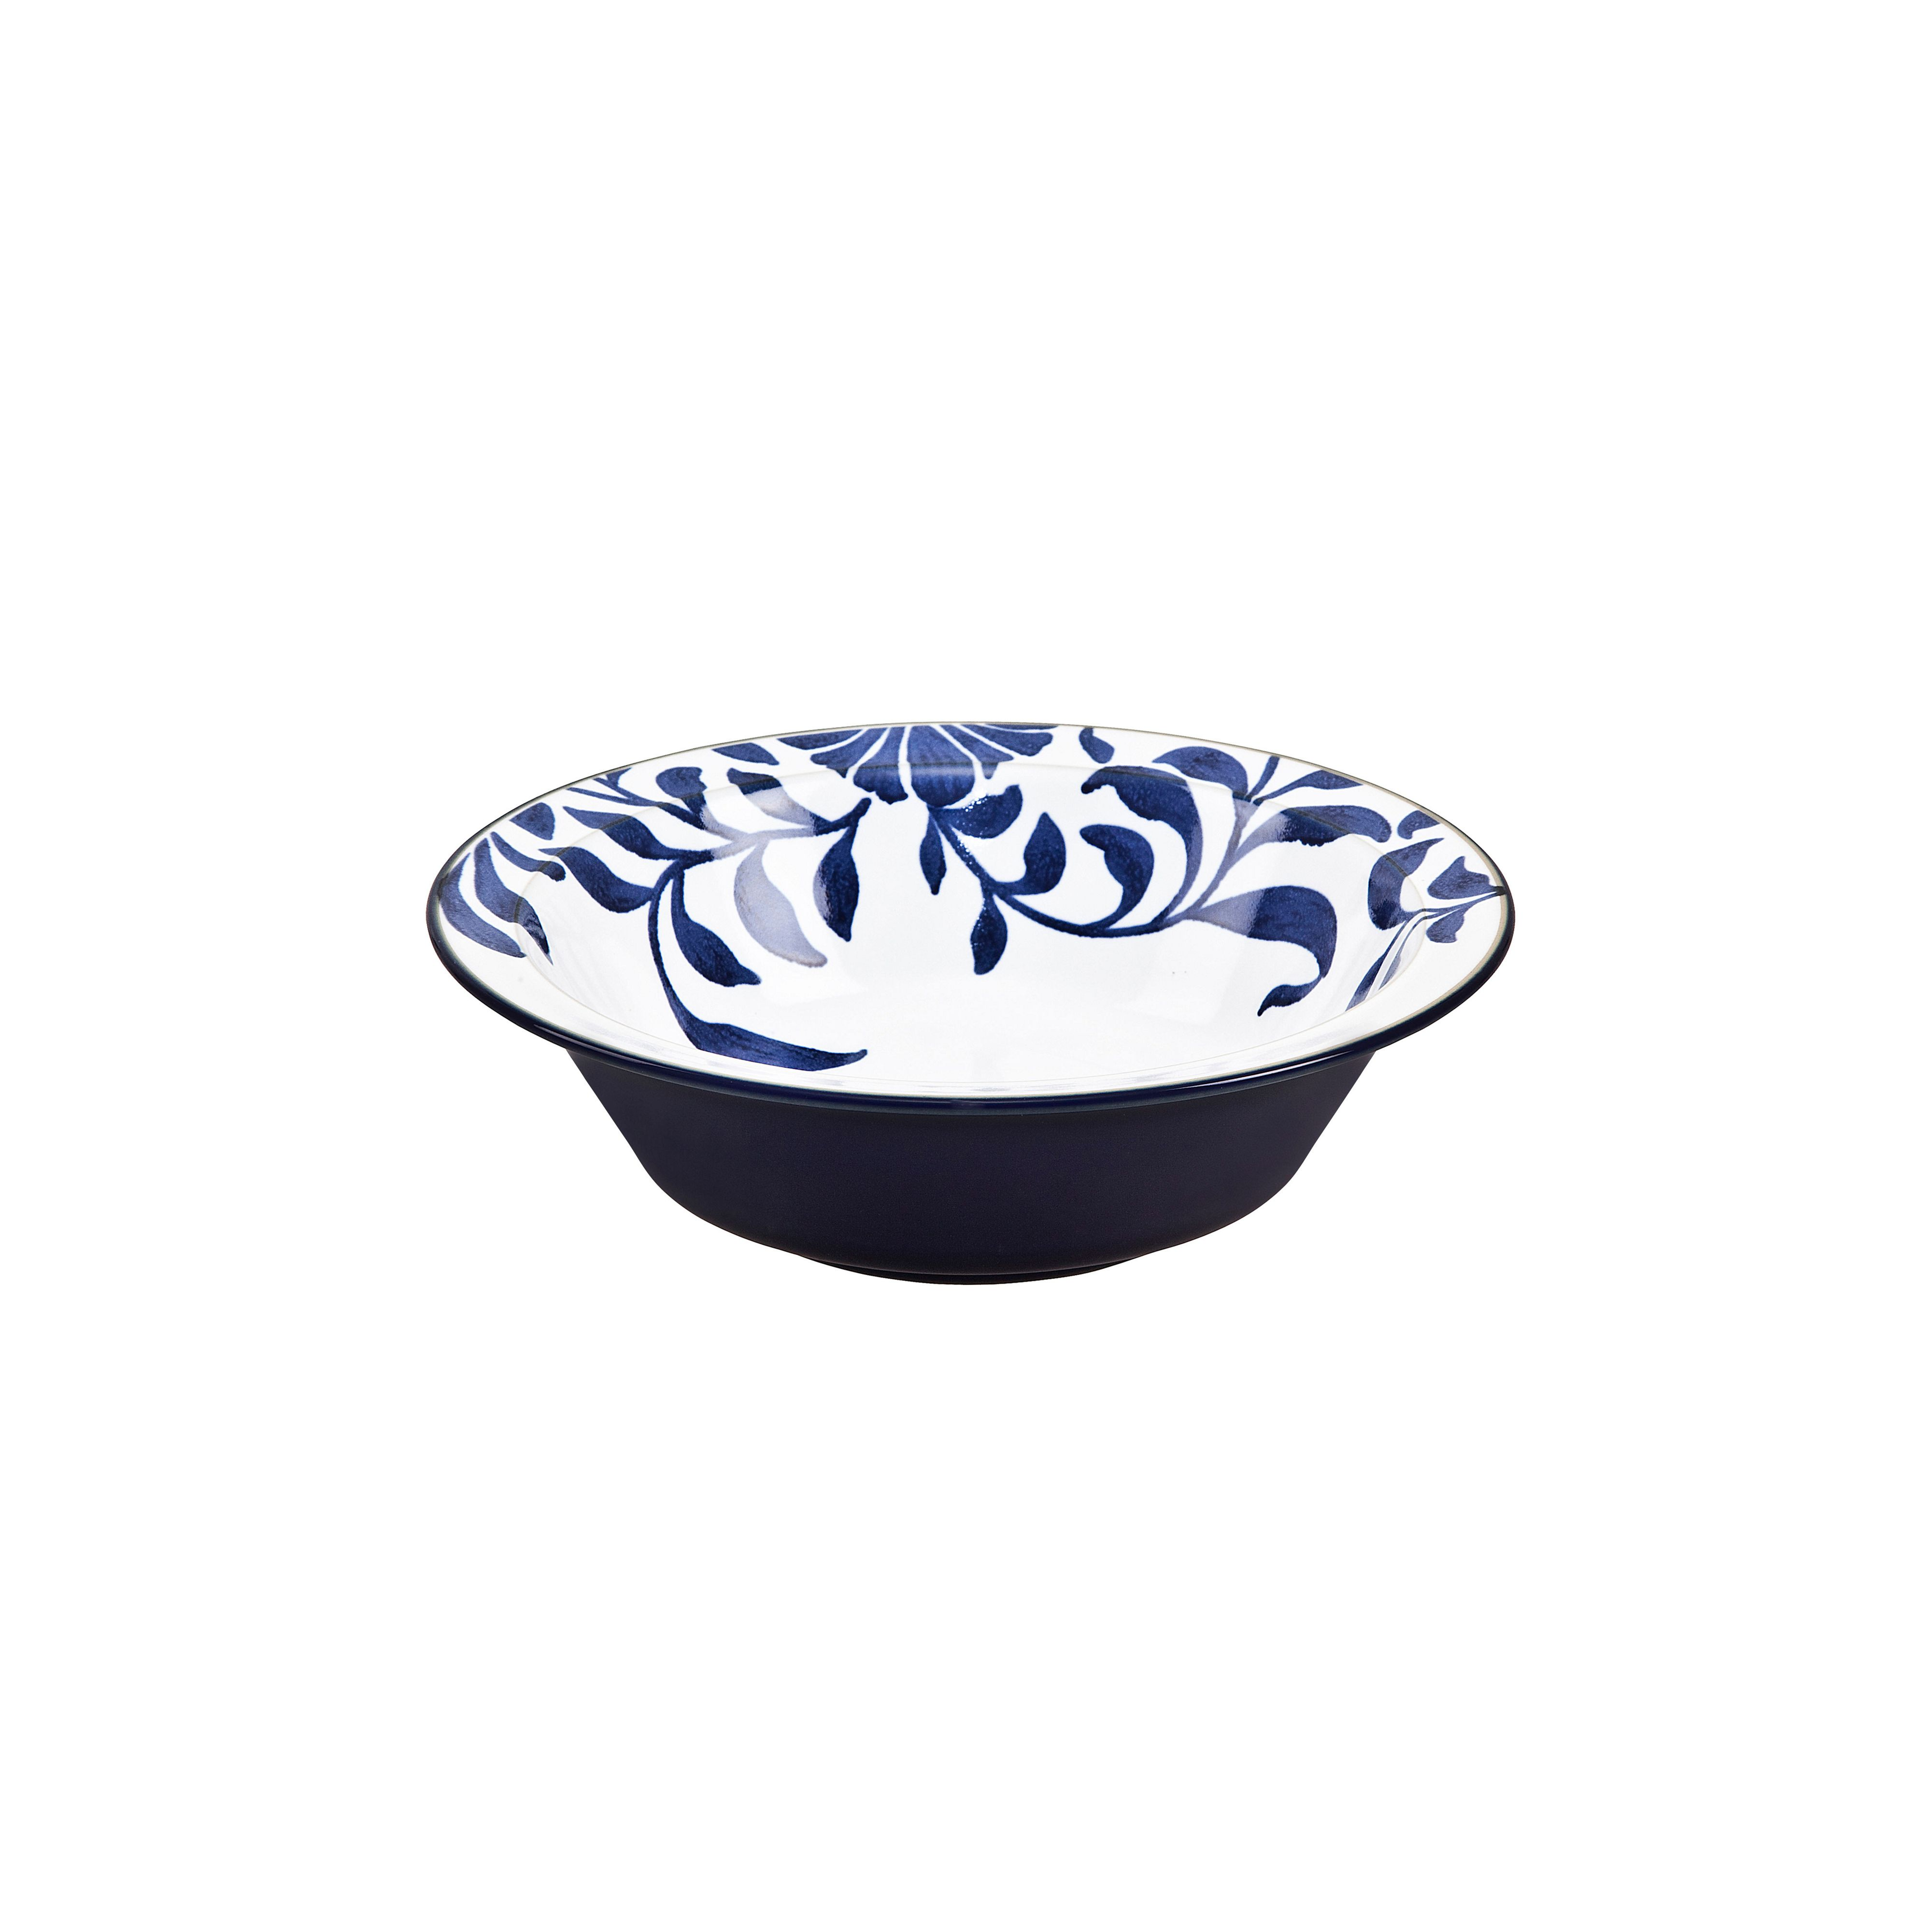 Malmo Bloom soup / cereal bowl